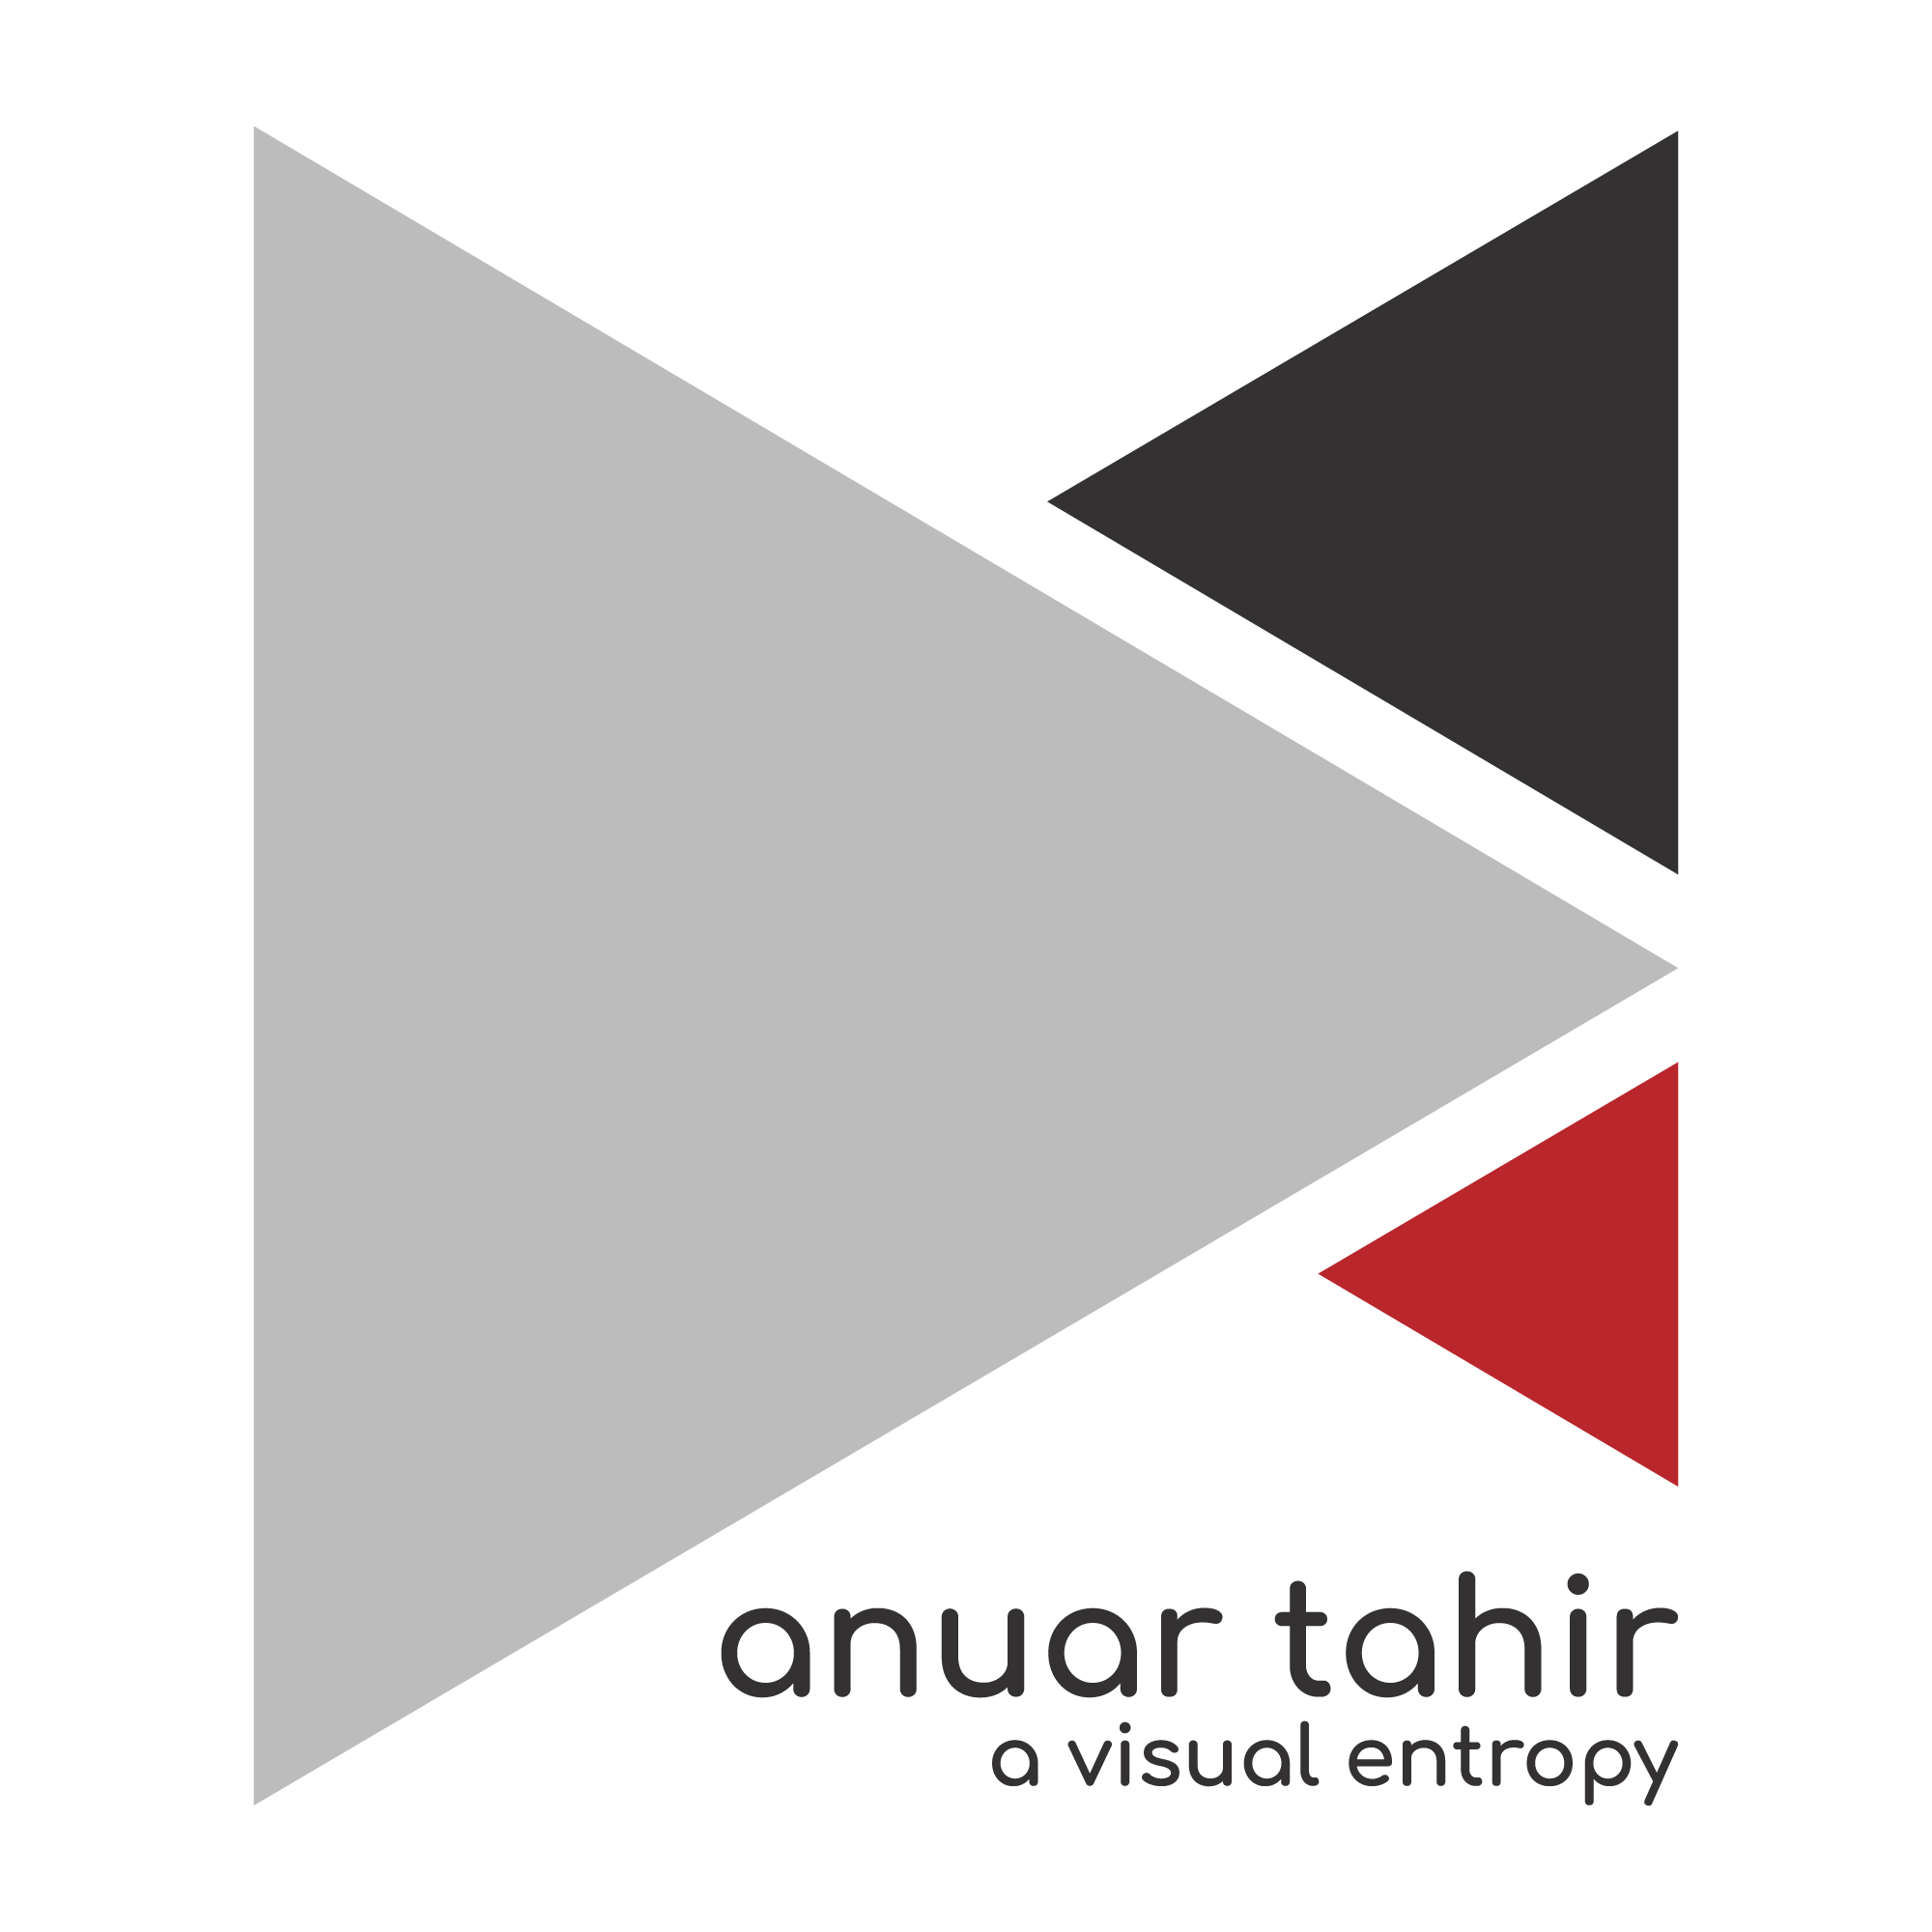 anuartahir – a visual entropy